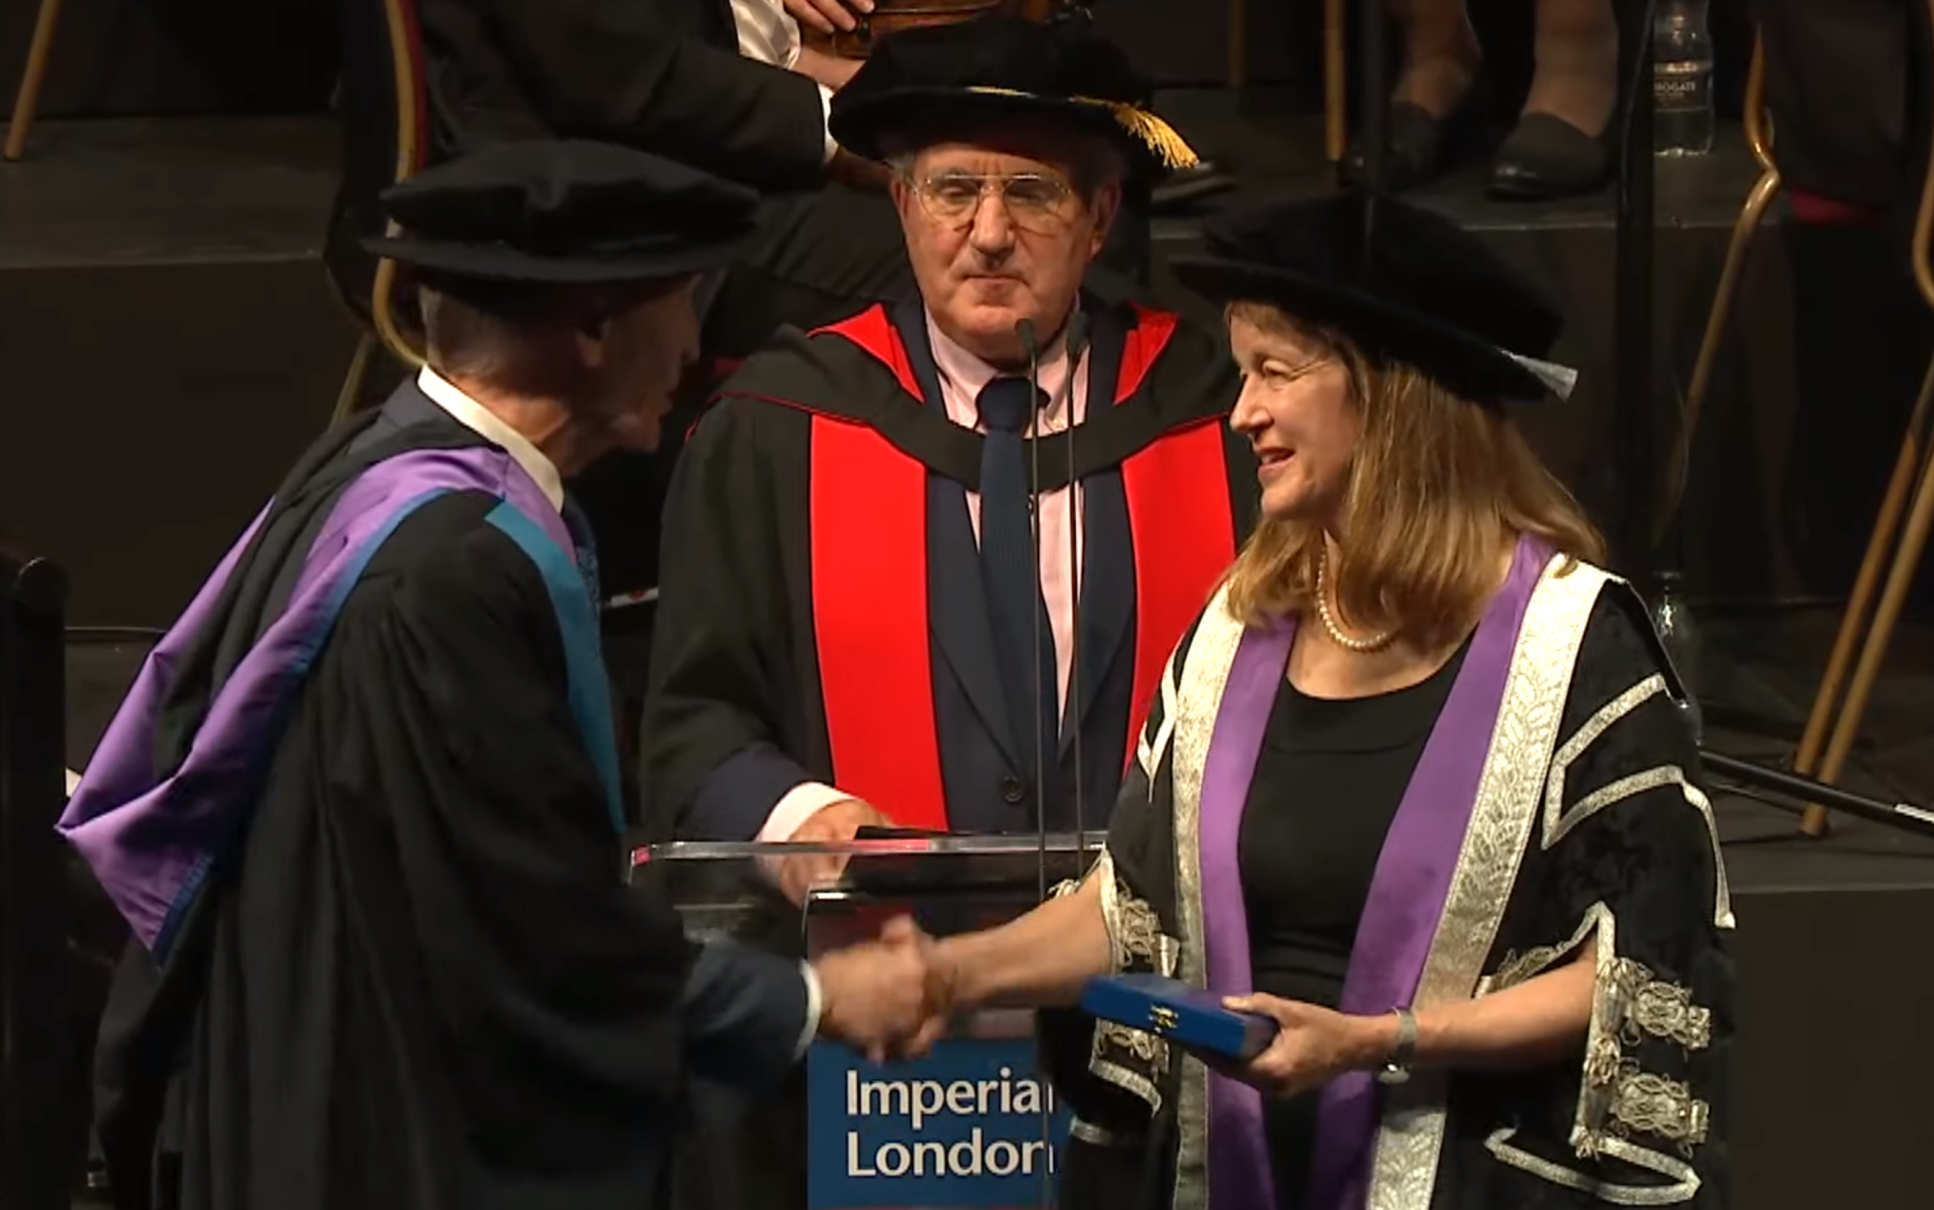 Prof Best received the Imperial College Medal from President Gast